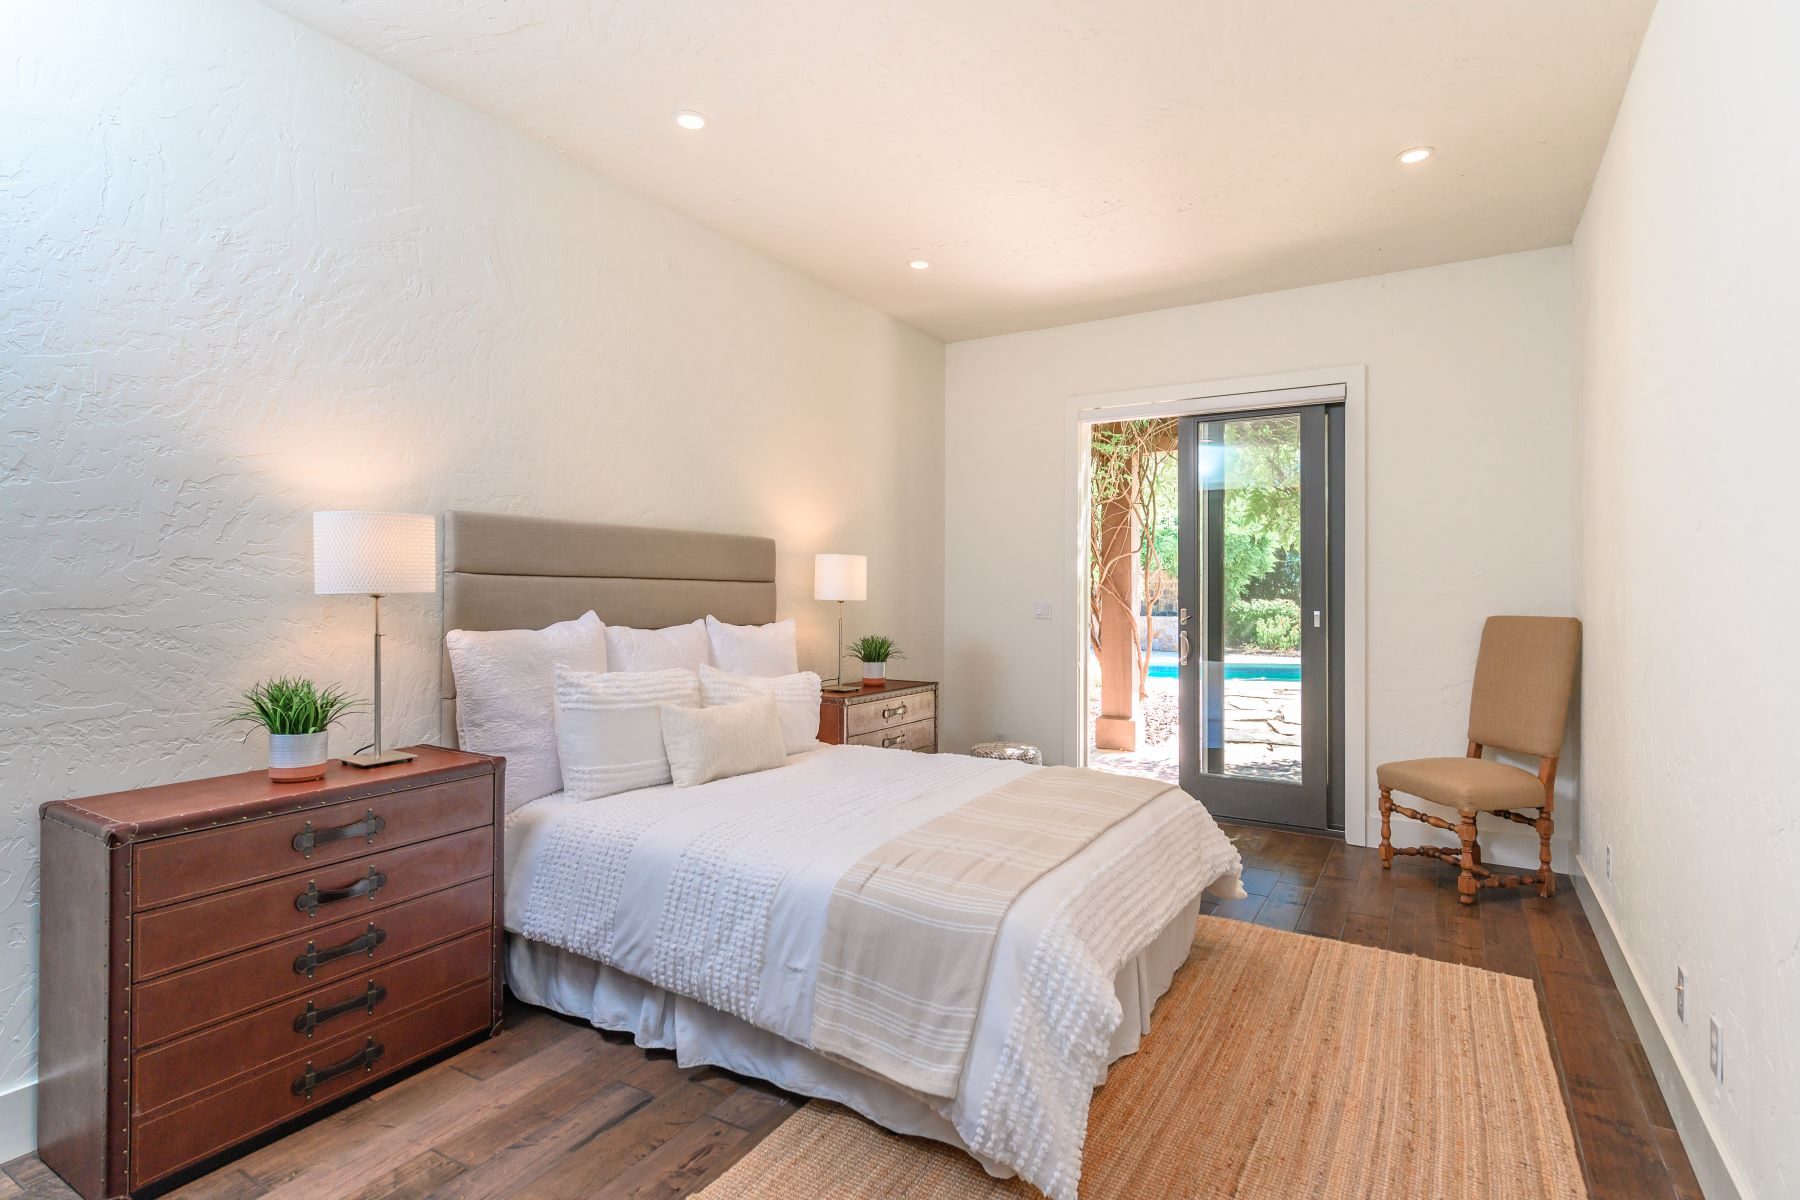 Additional photo for property listing at 1510 Yountville Cross Road 1510 Yountville  Cross Road Yountville, California 94599 United States